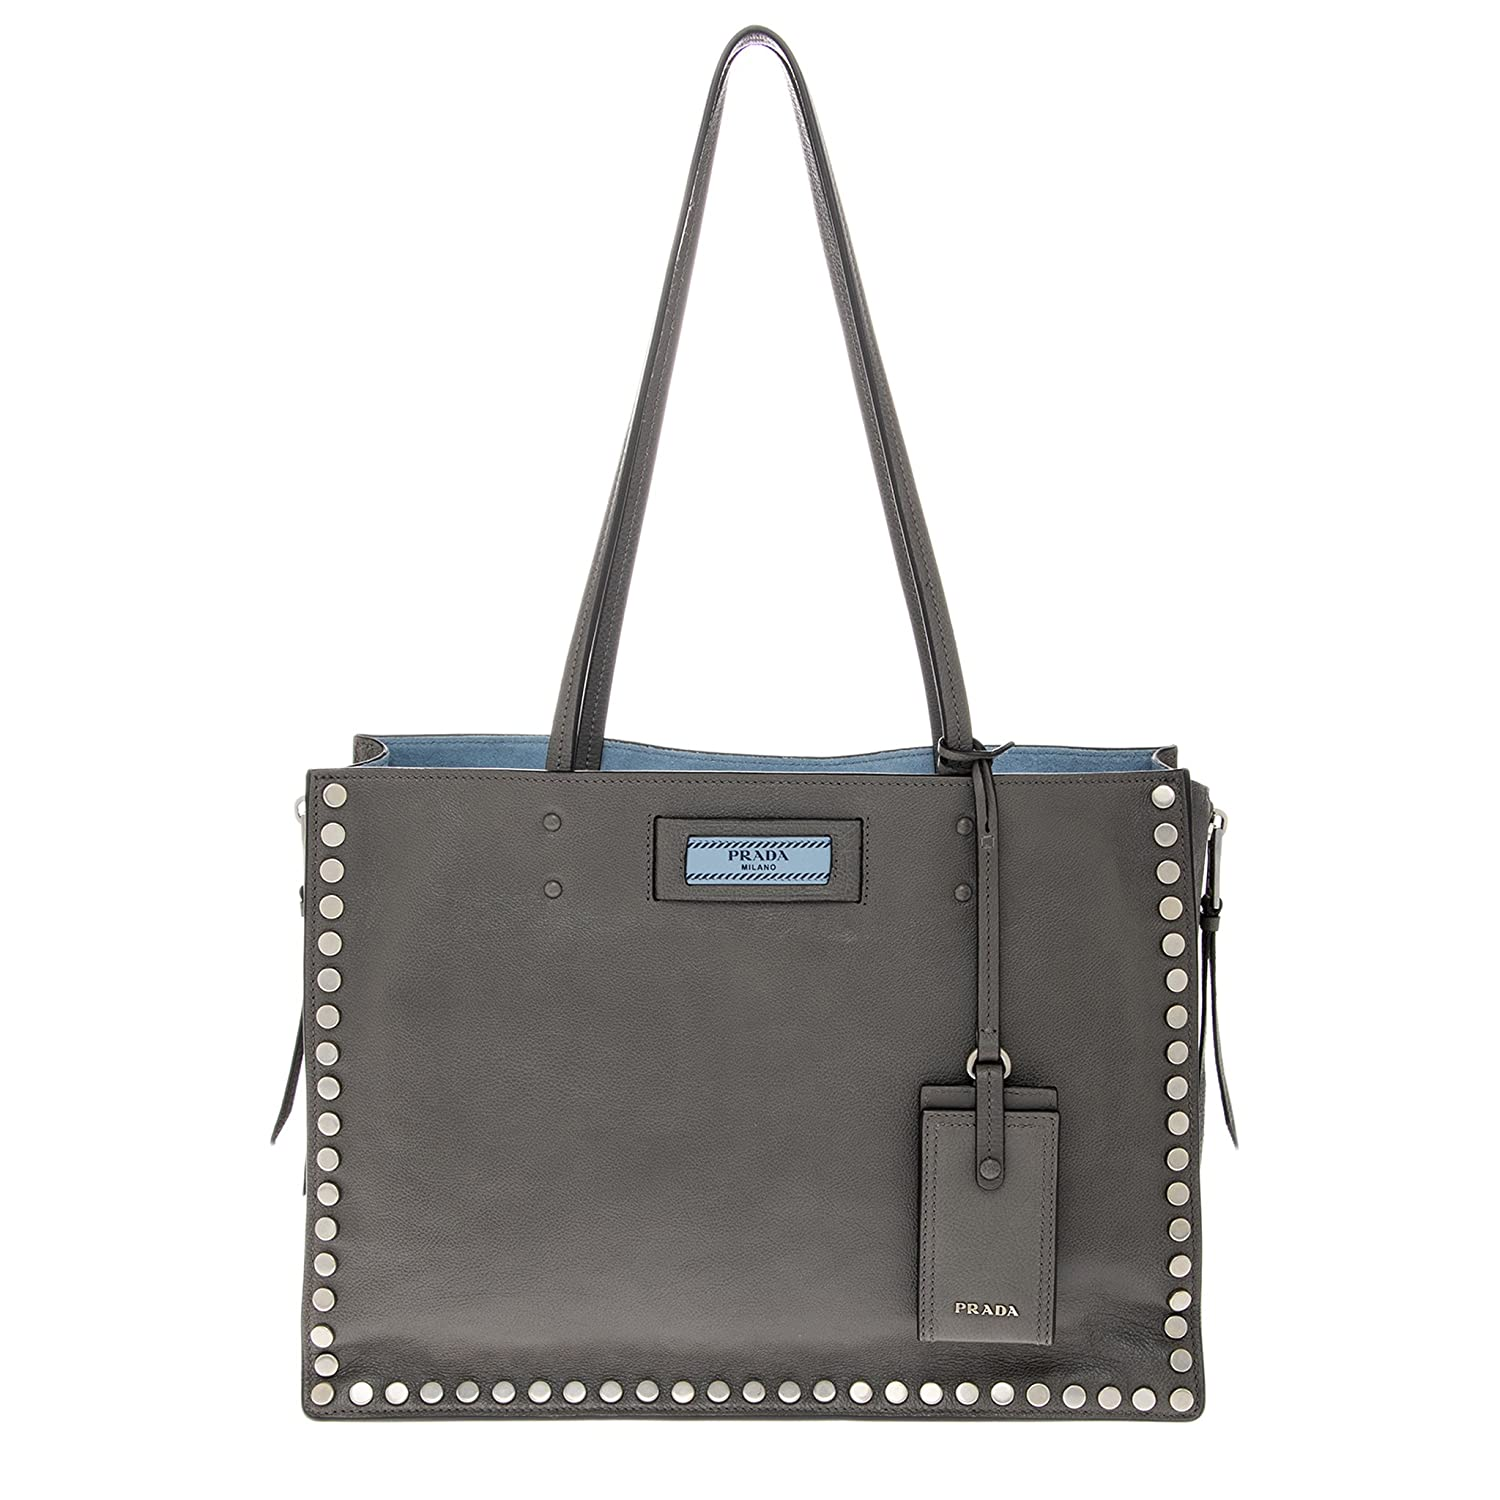 e5cc45081 Amazon.com: Prada Women's Etiquette Studded Tote Bag Grey: Clothing